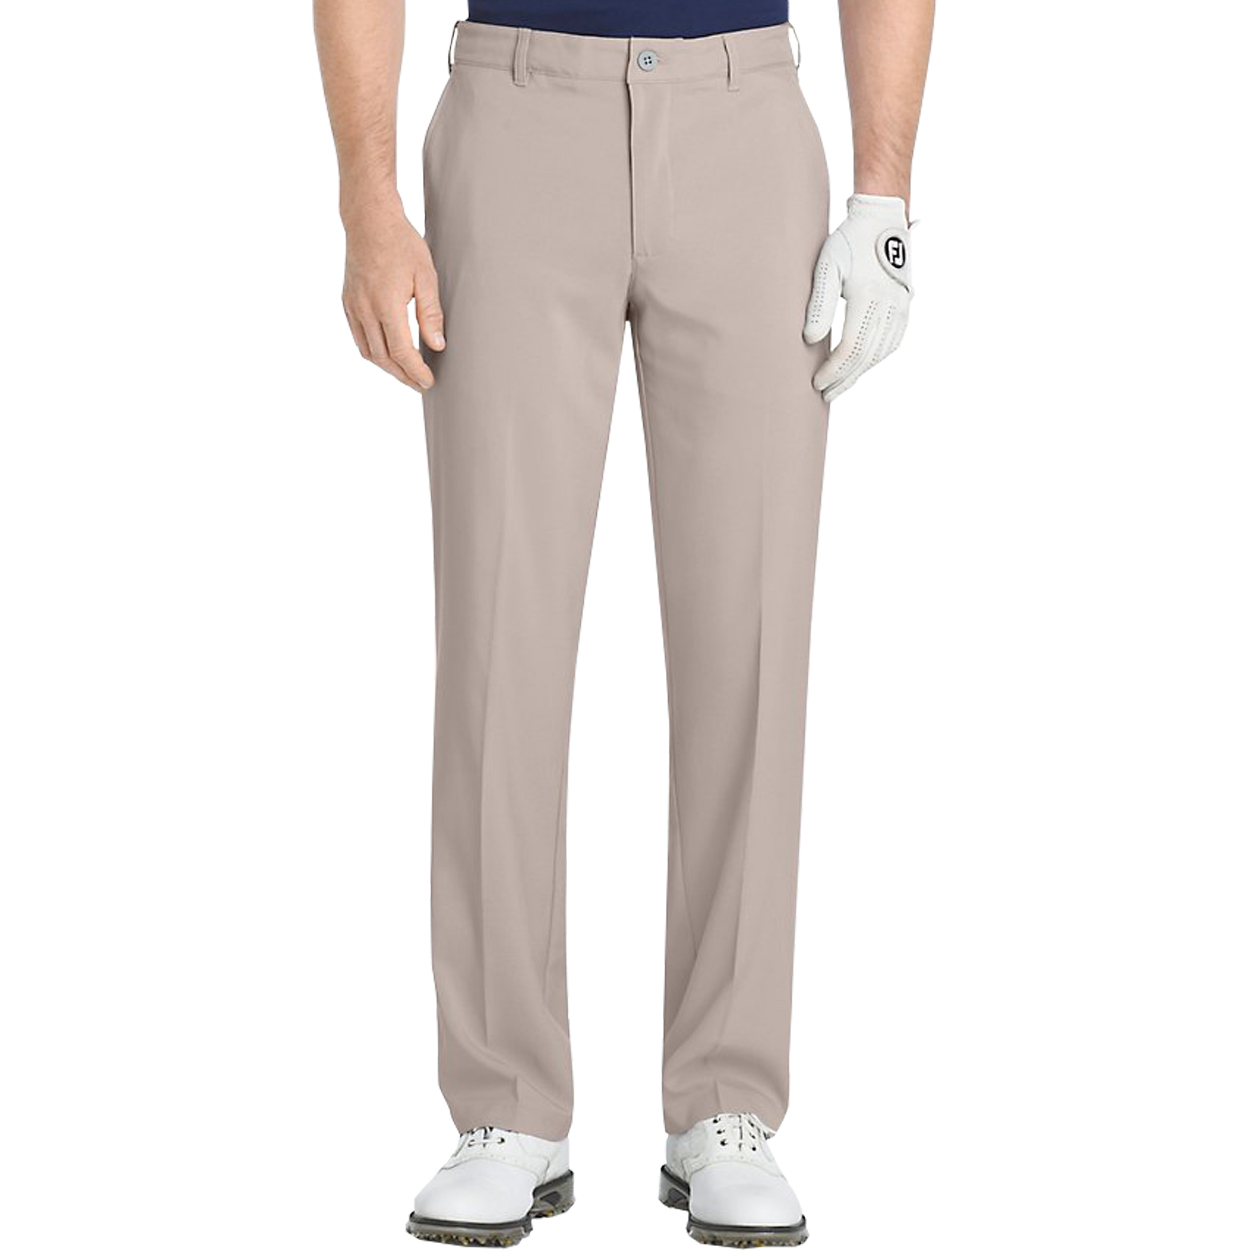 IZOD Golf Swingflex Slim...